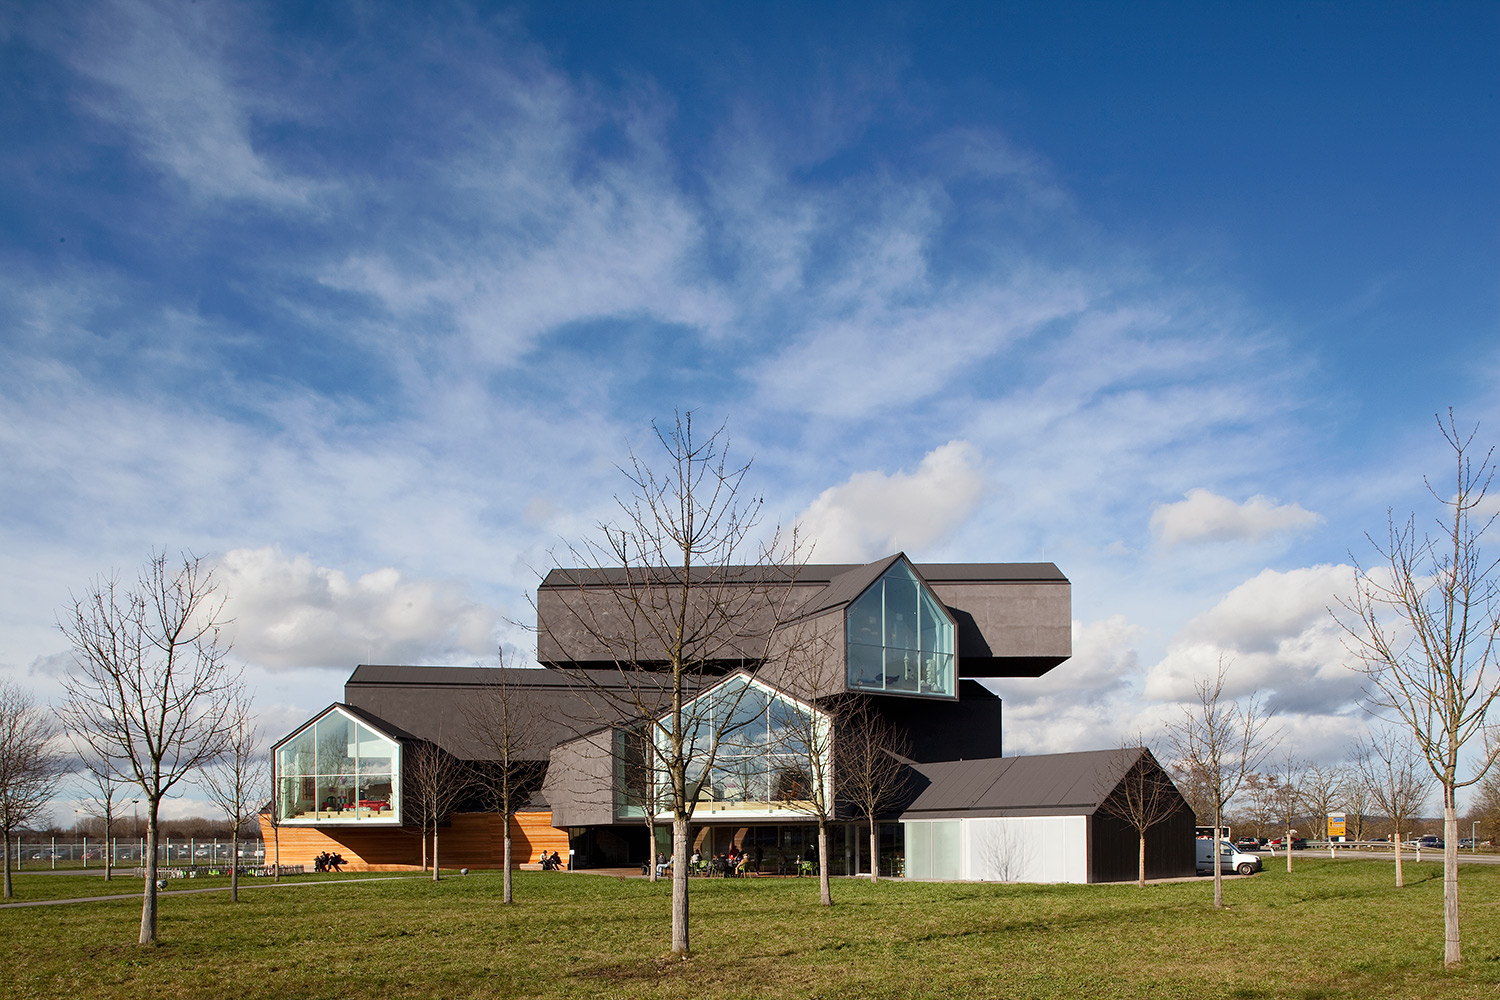 Vitra Haus, Weil am Rhein, Germany. Architect: Herzog & de Meuron. Photo by Fran Parente.